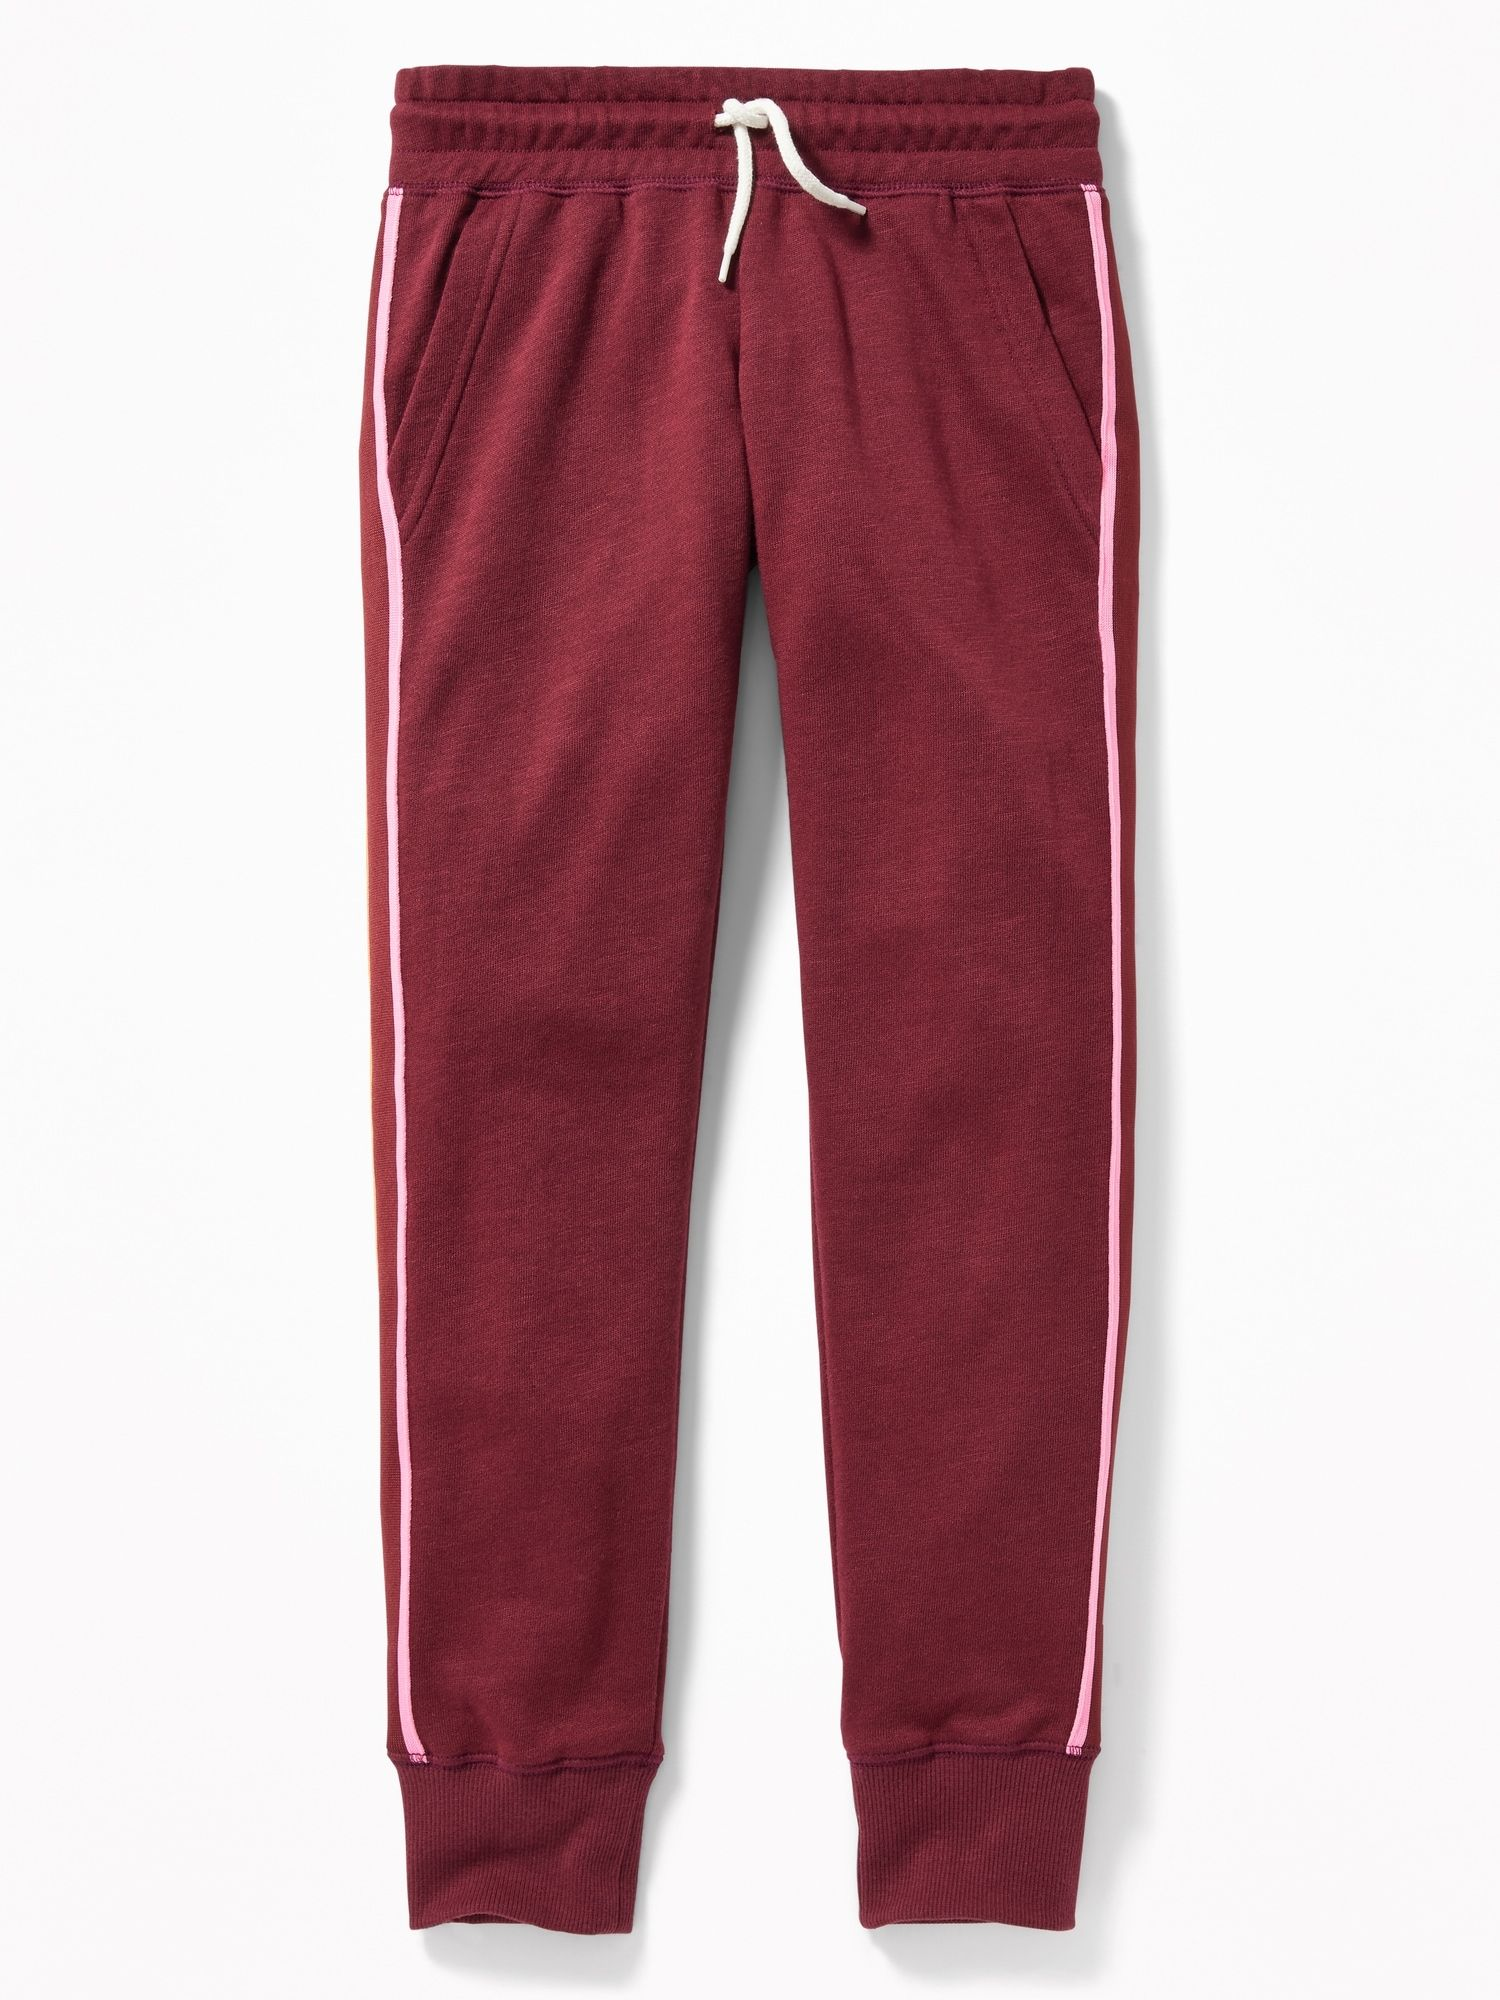 product Girls joggers, Old navy girls, Joggers